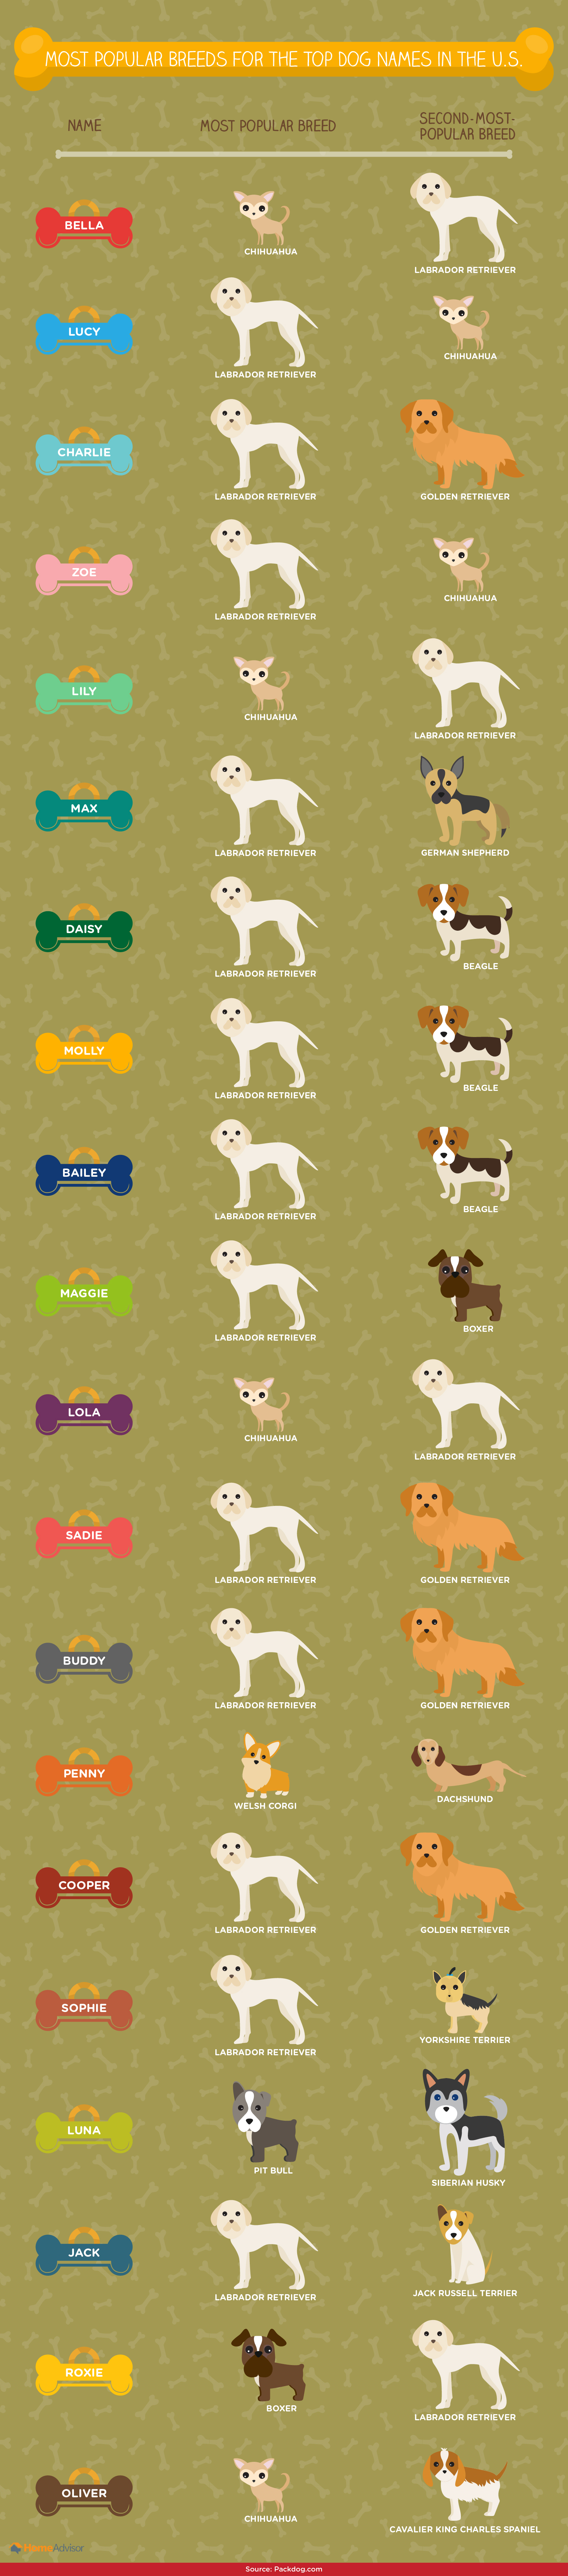 Common names for top dog names